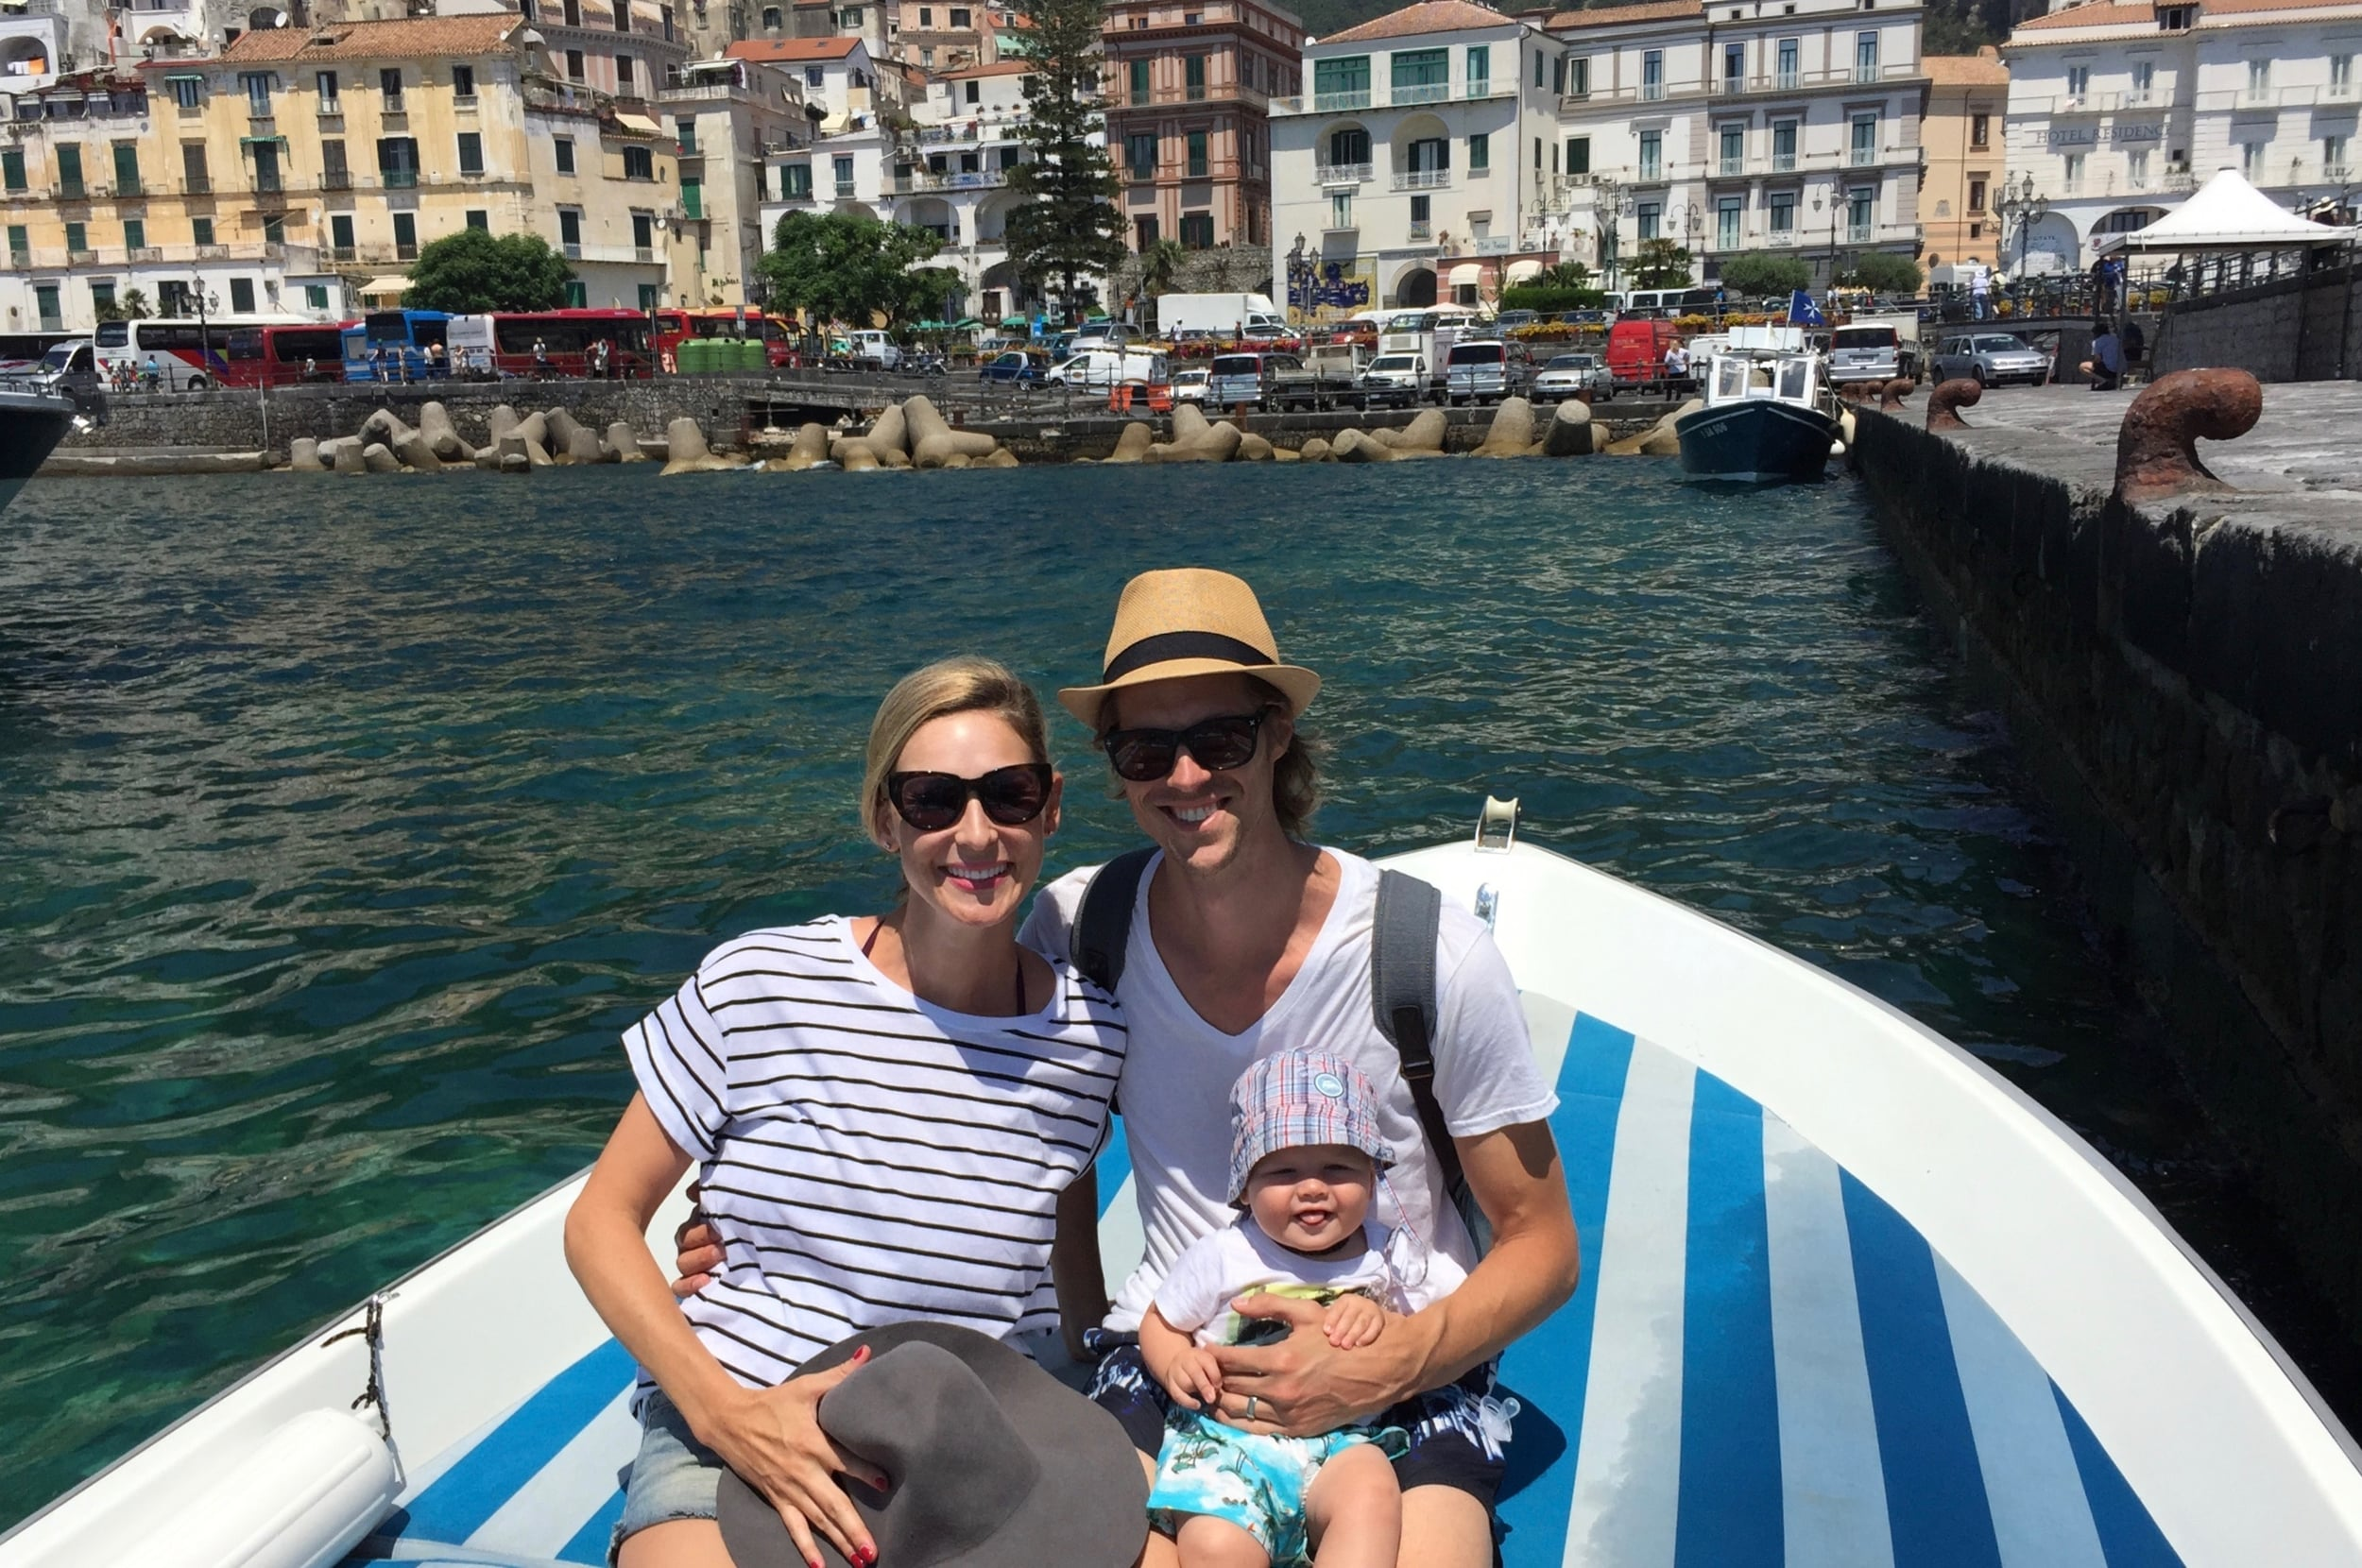 Amalfi: and my FAVE Trip Styler family pic complete with Baby Styler's tongue sticking out!